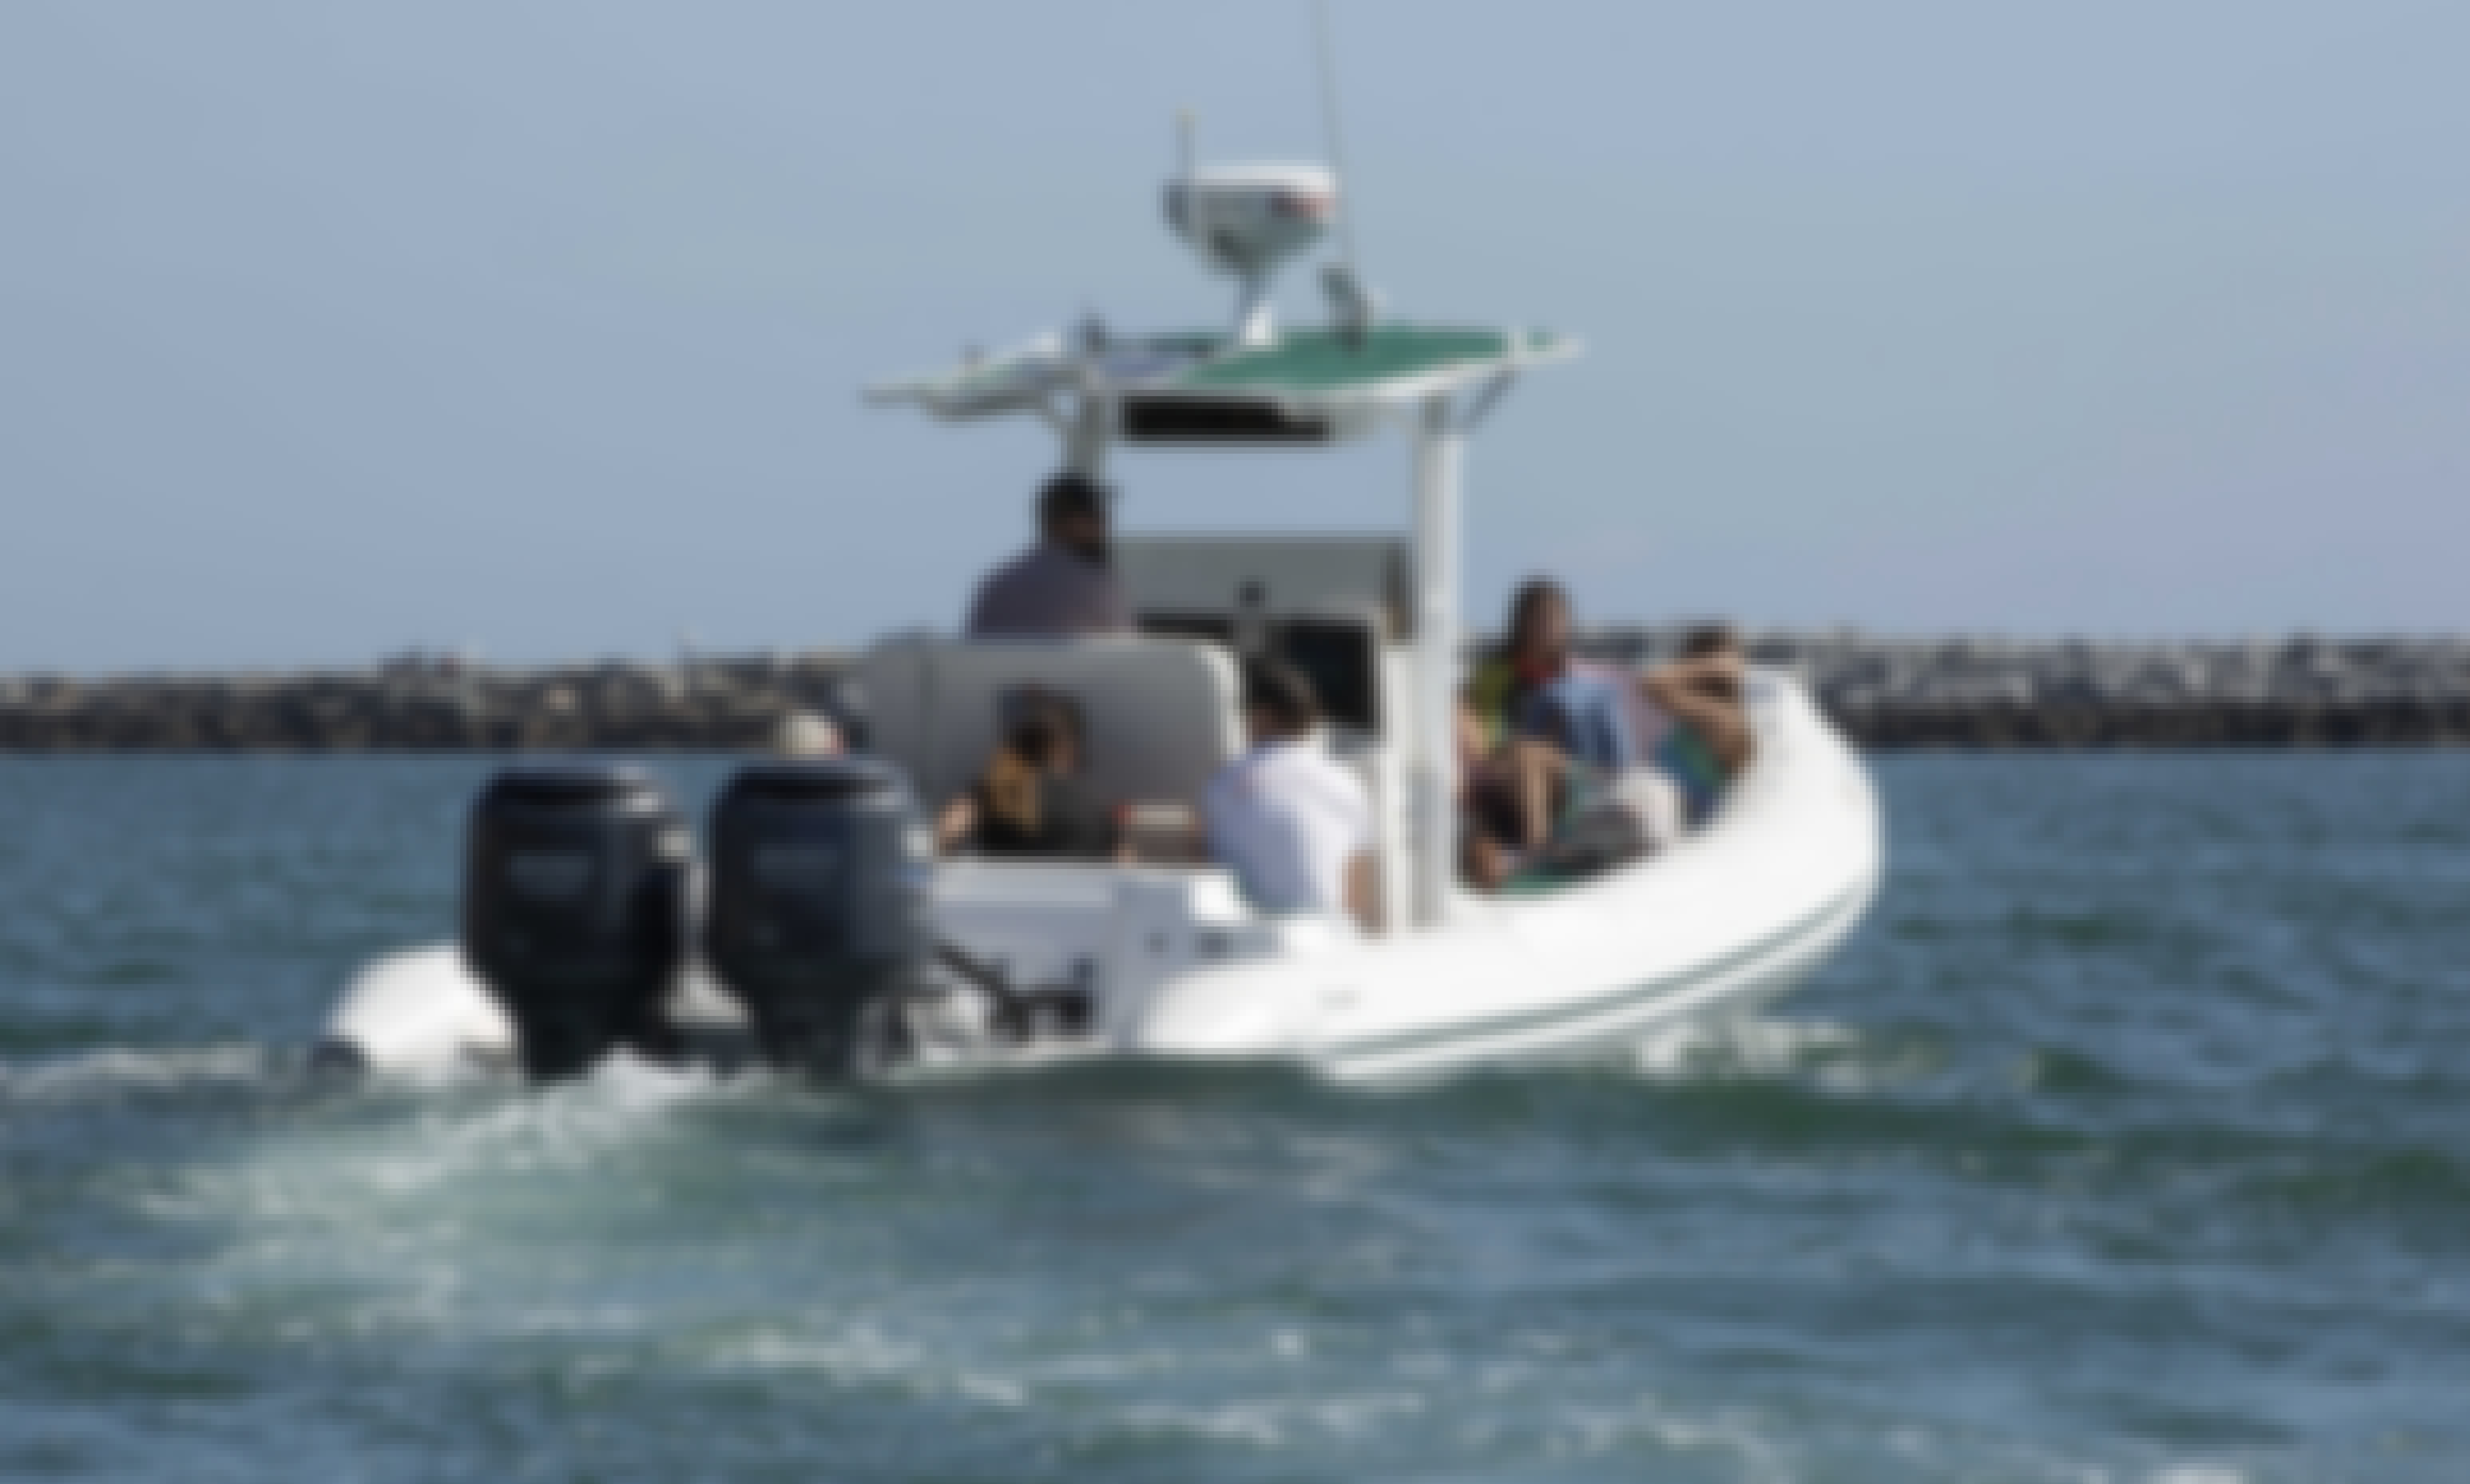 Luxury Boat for Coastal/Harbor cruises or dolphin whale watching